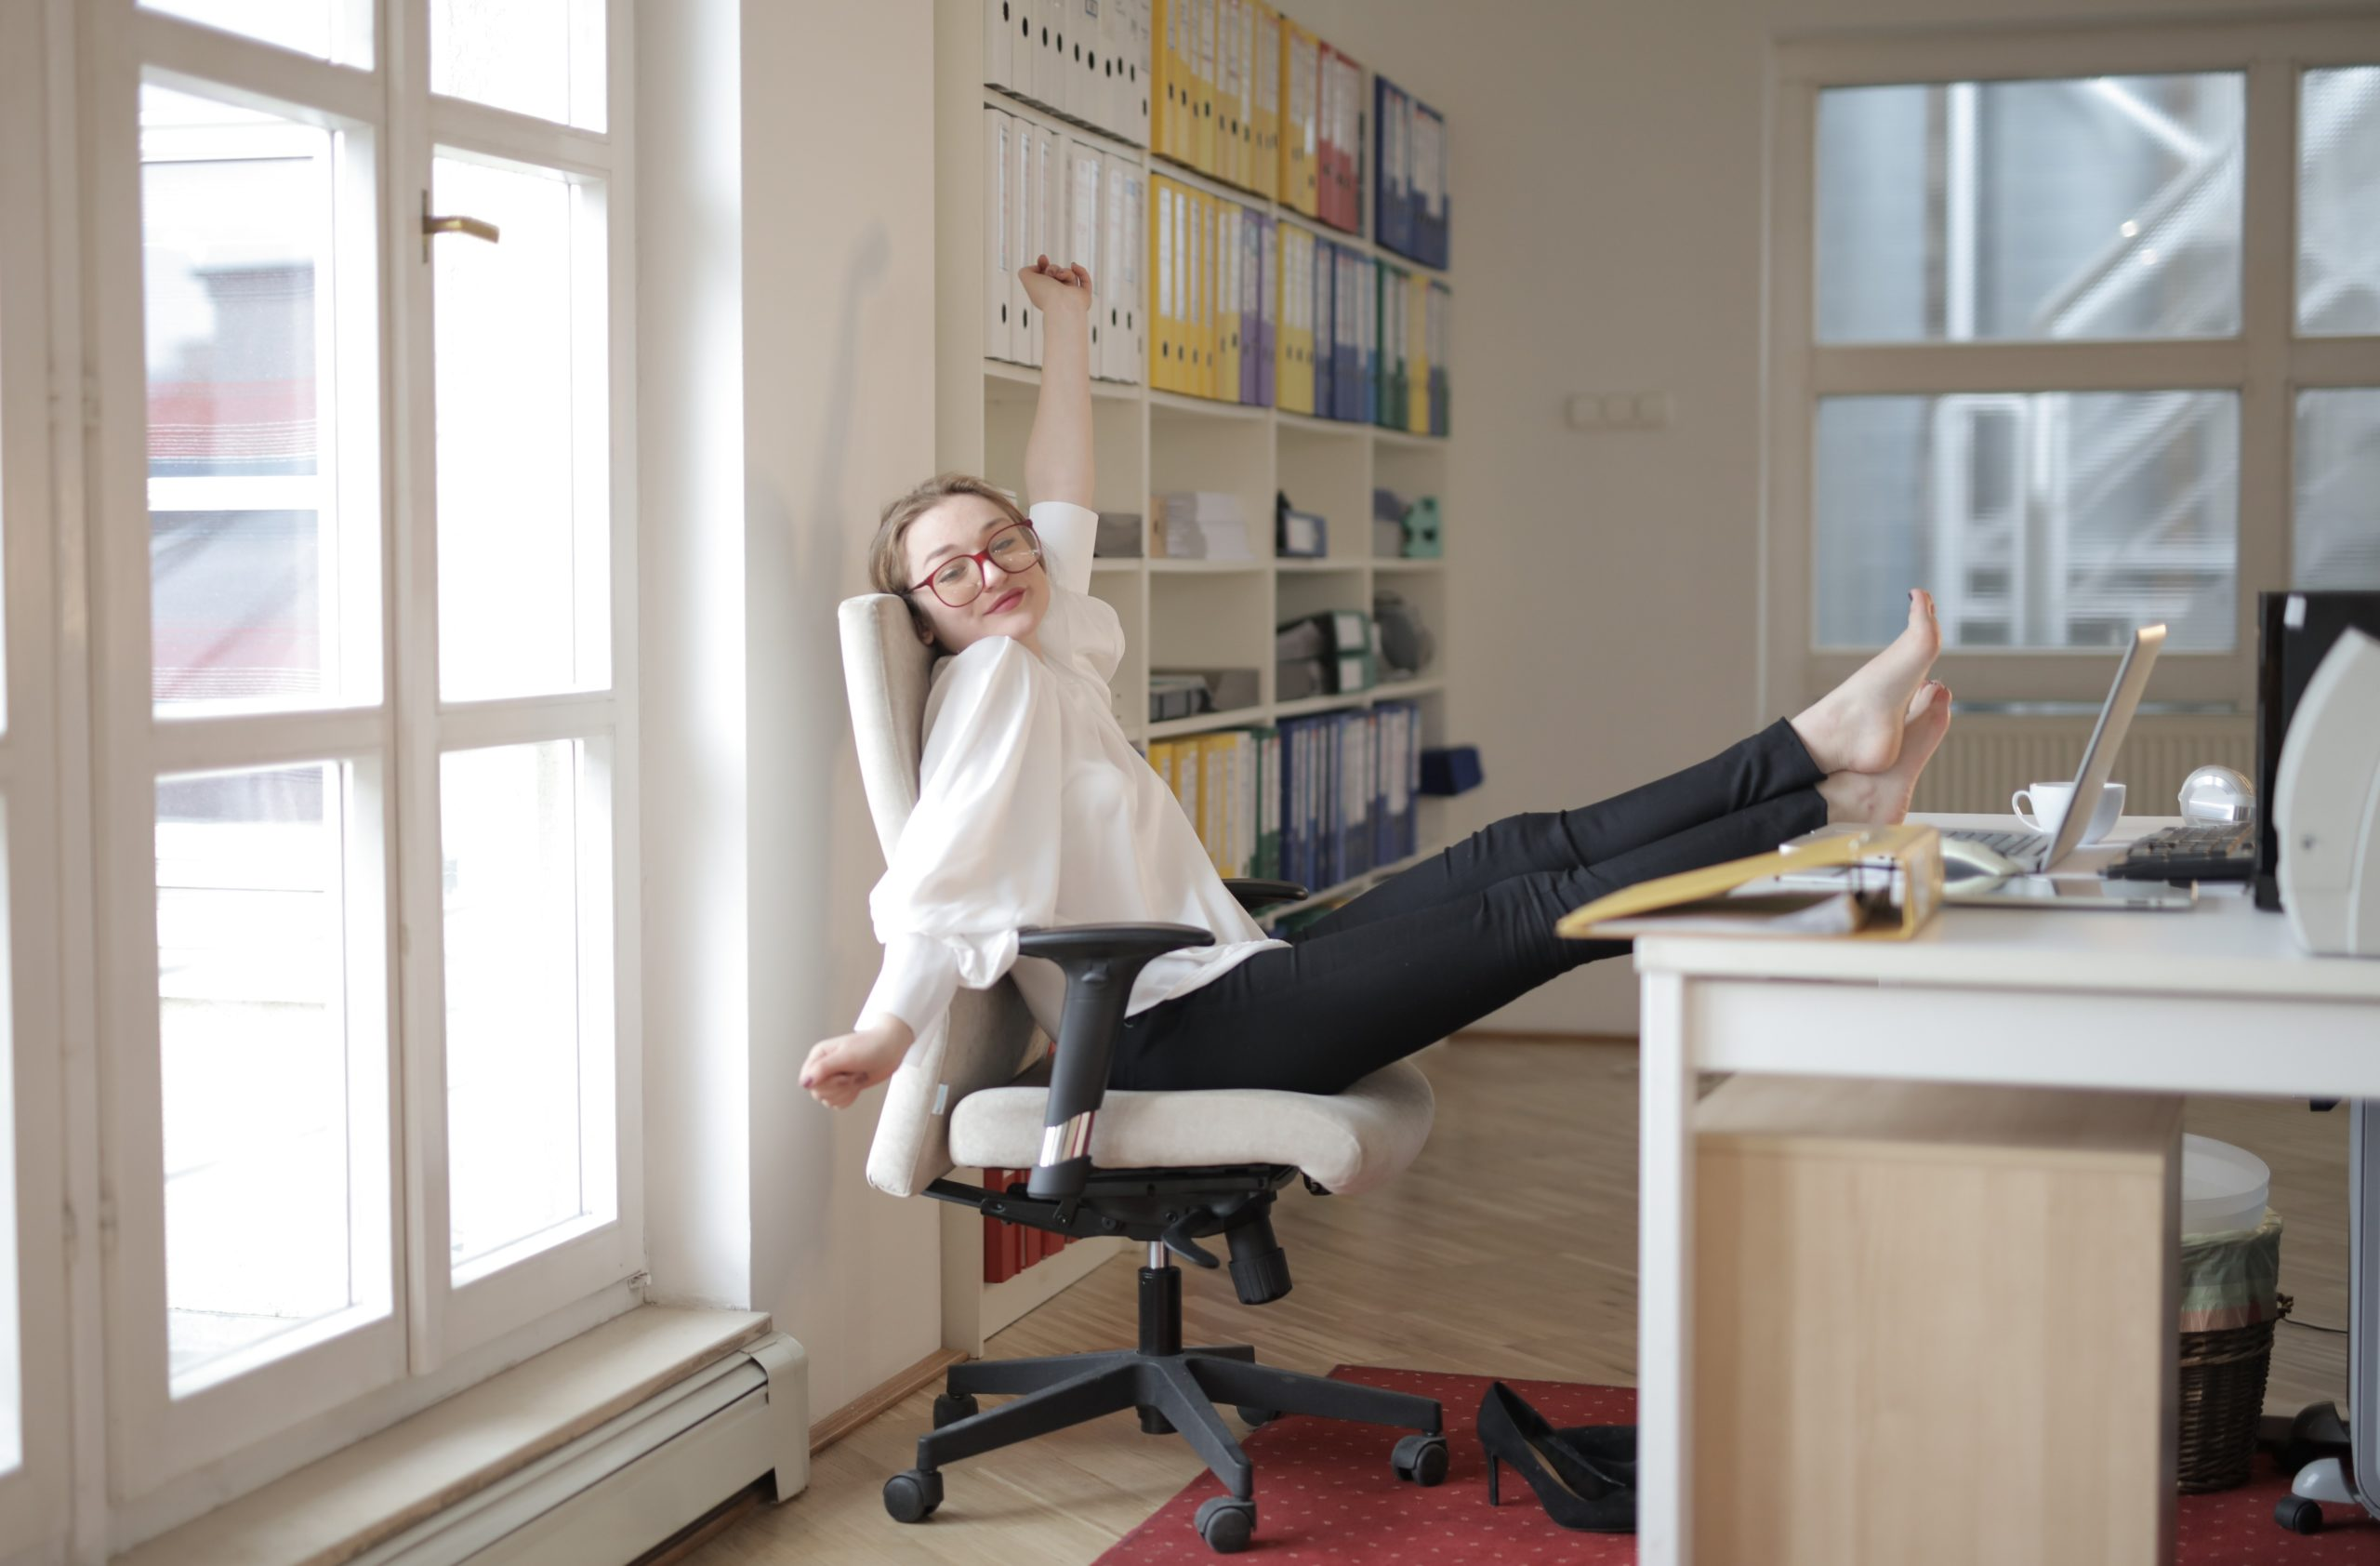 dreamy-female-employee-relaxing-with-feet-on-table-in-office-3791119